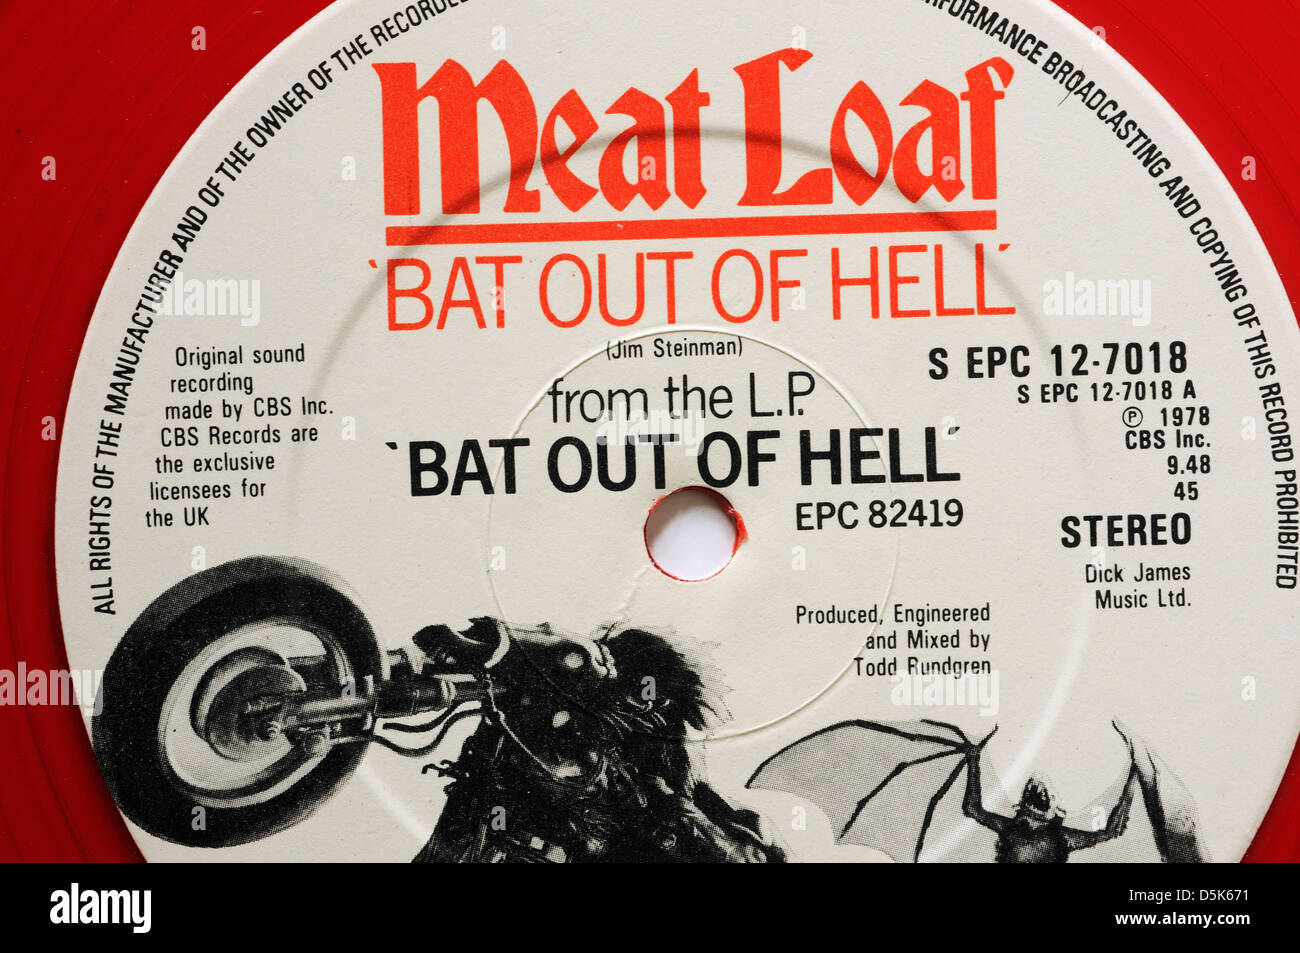 Meat Loaf Bat Out of Hell 12' single - Stock Image